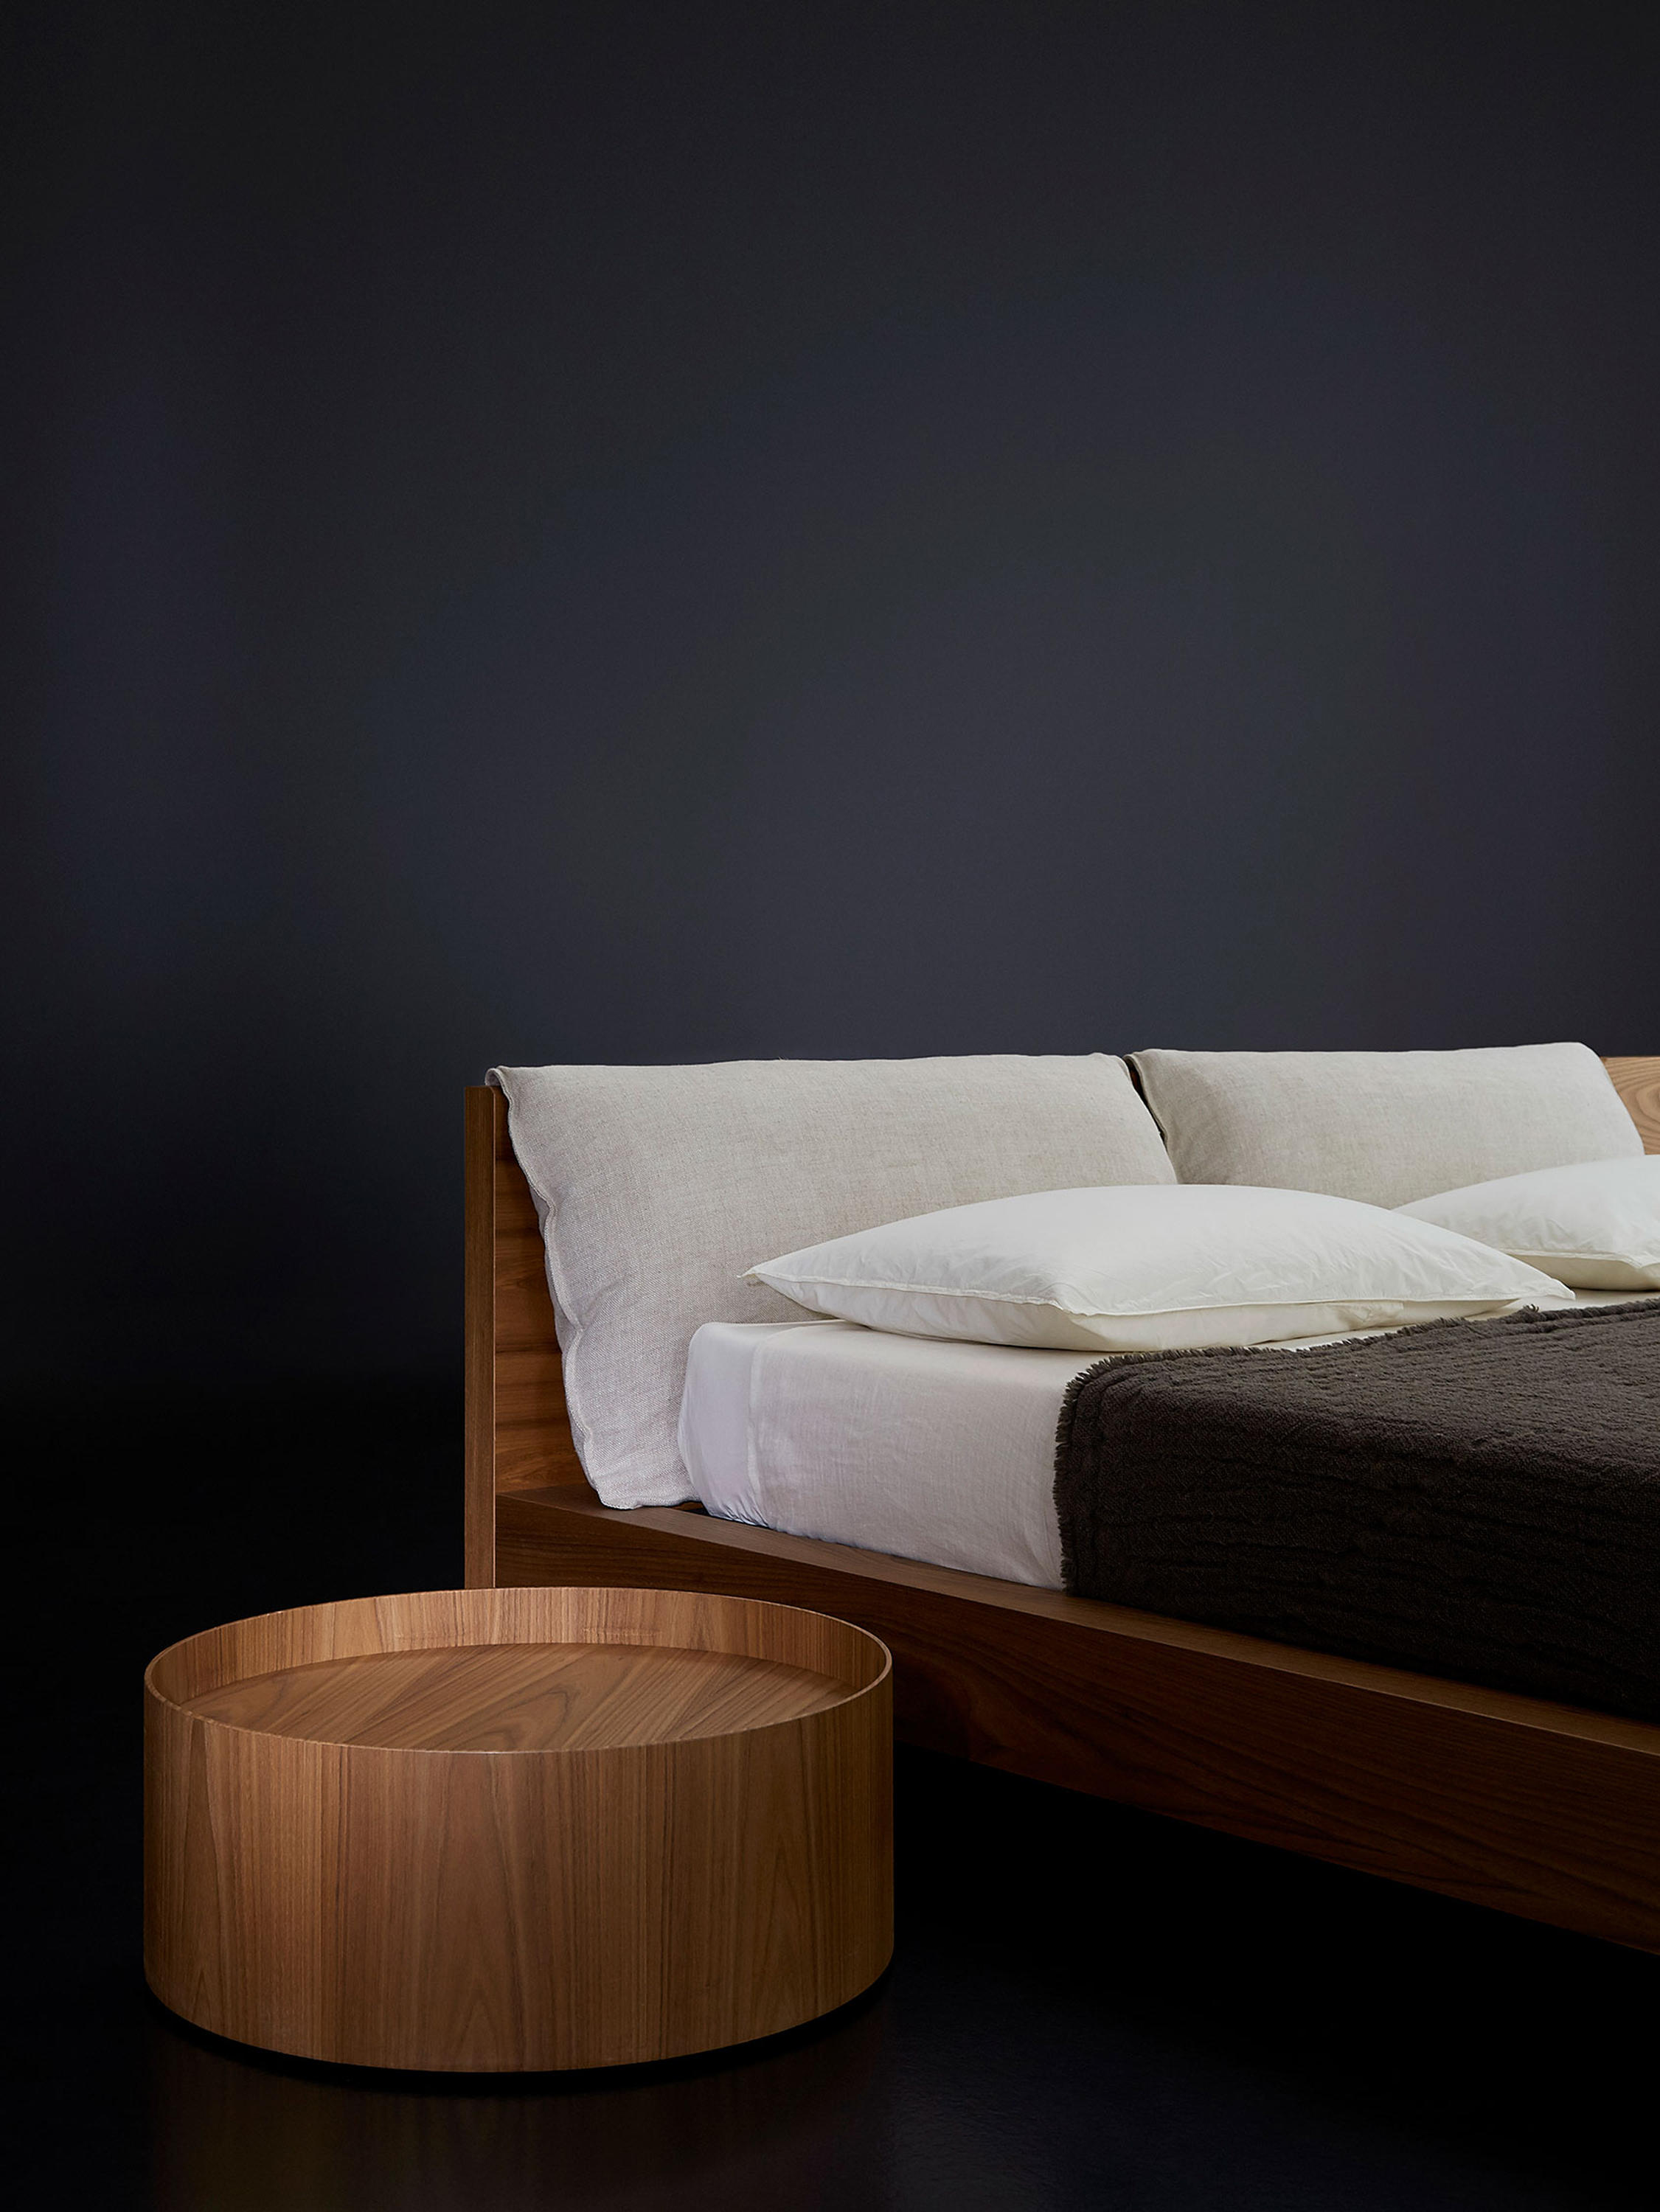 Taiko Bed Beds From Porro Architonic